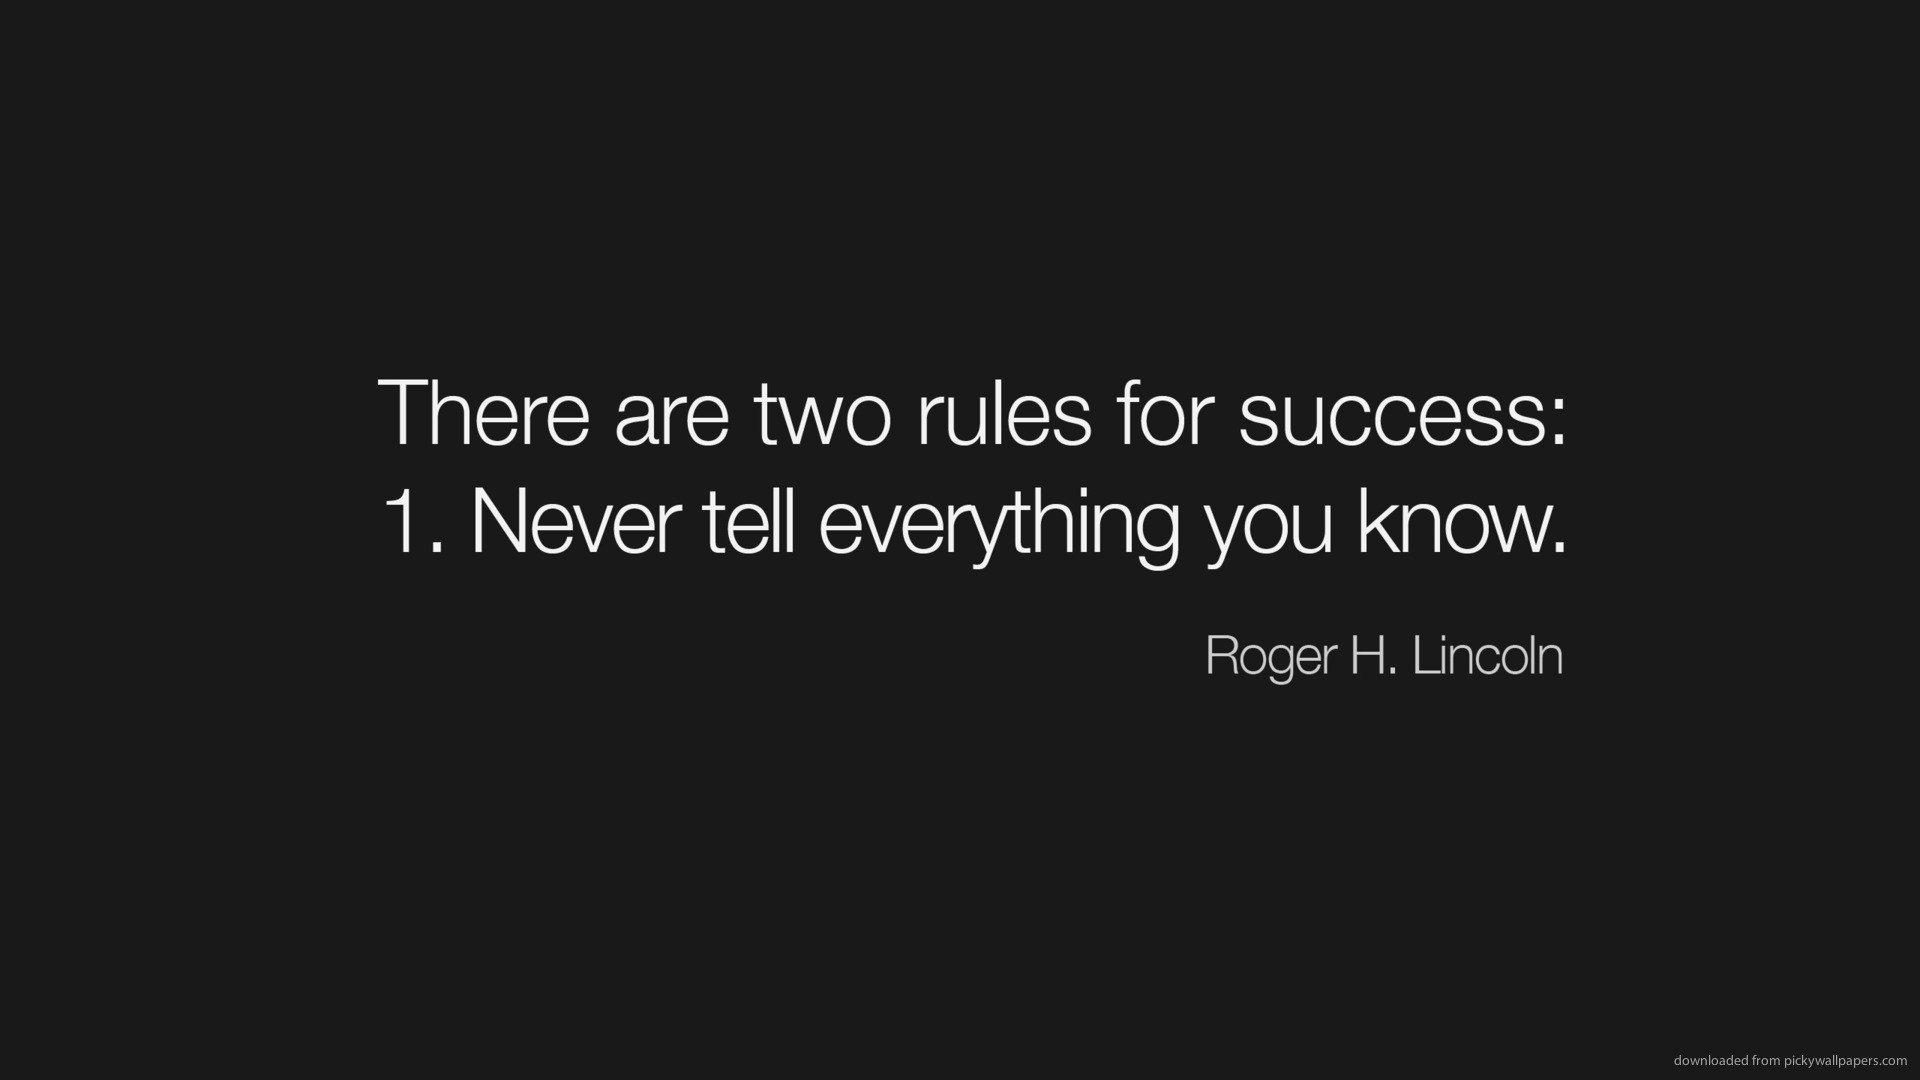 The Two Rules For Success Hd Wallpaper